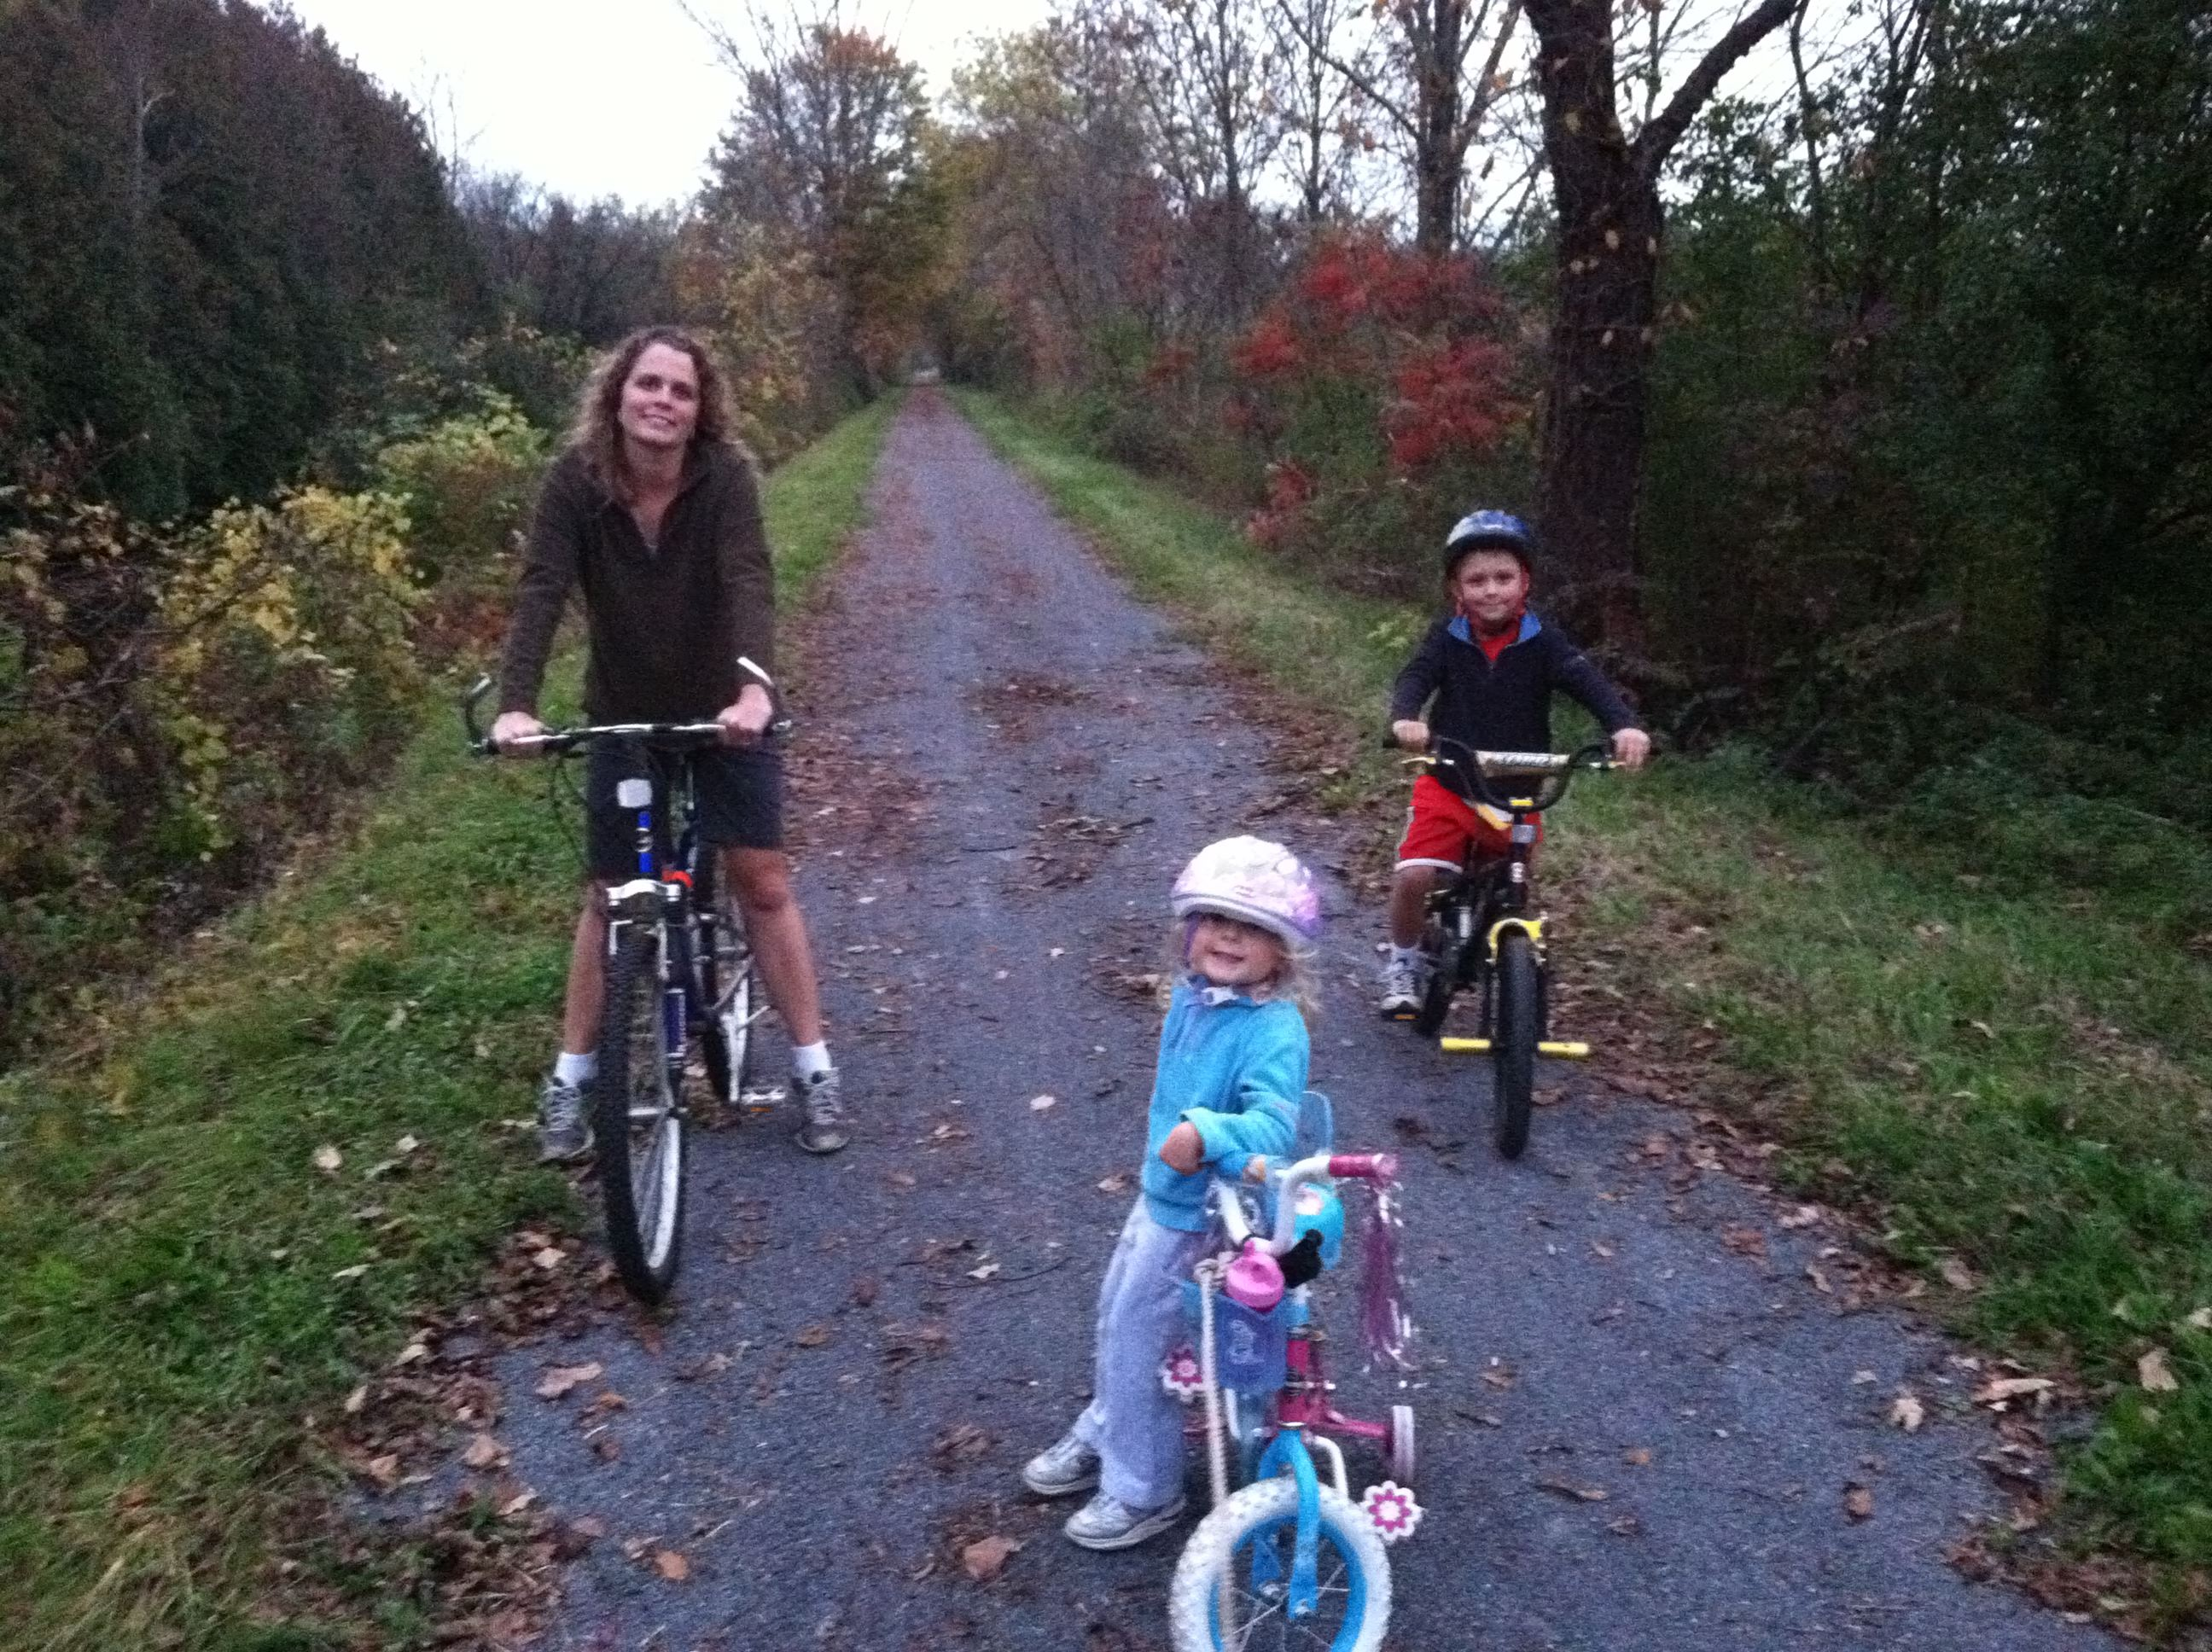 Young family riding bikes on a trail